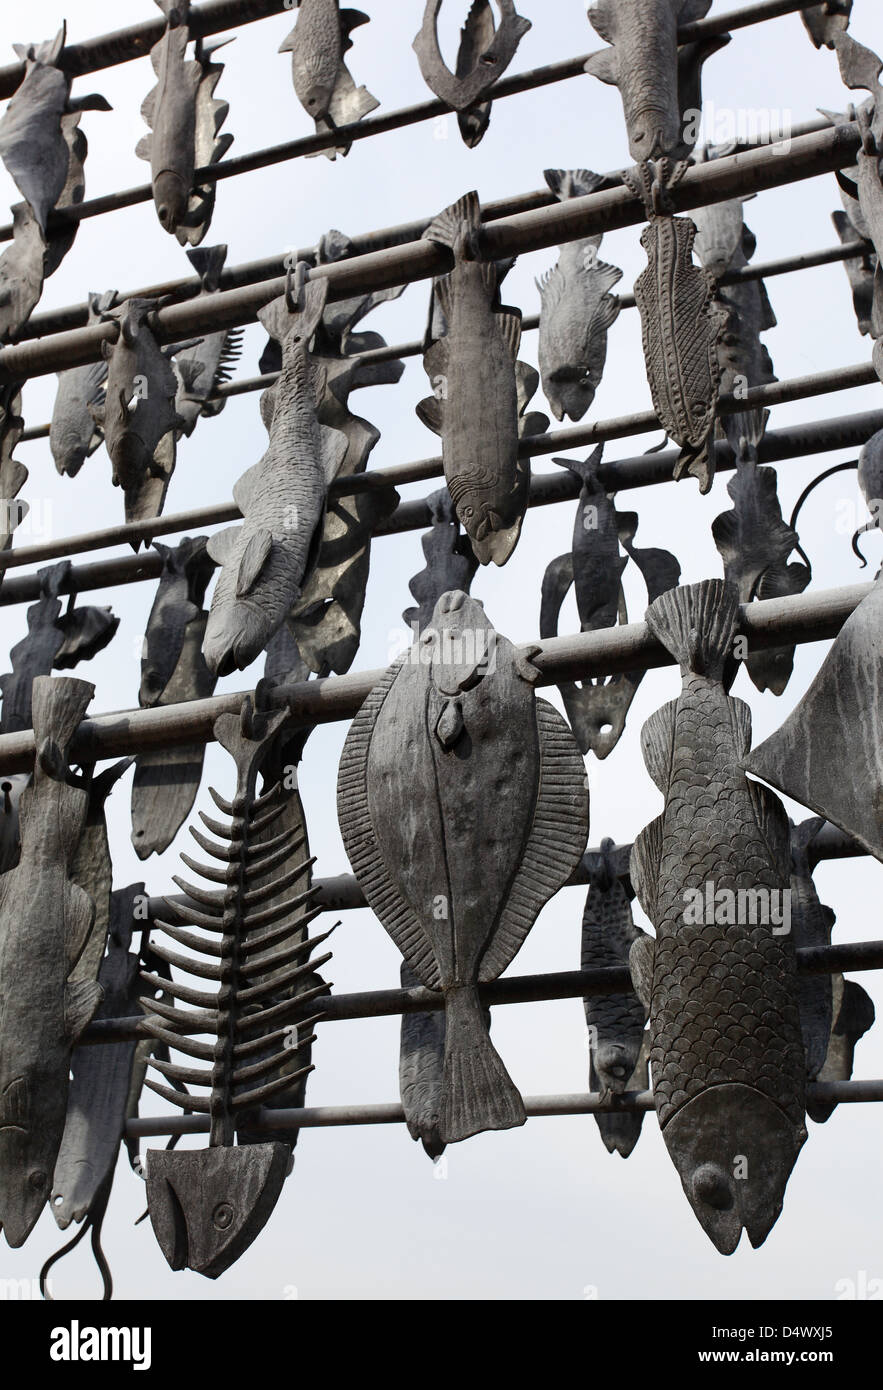 A steel sculpture of fish racks at South Quay in King's Lynn, Norfolk. - Stock Image